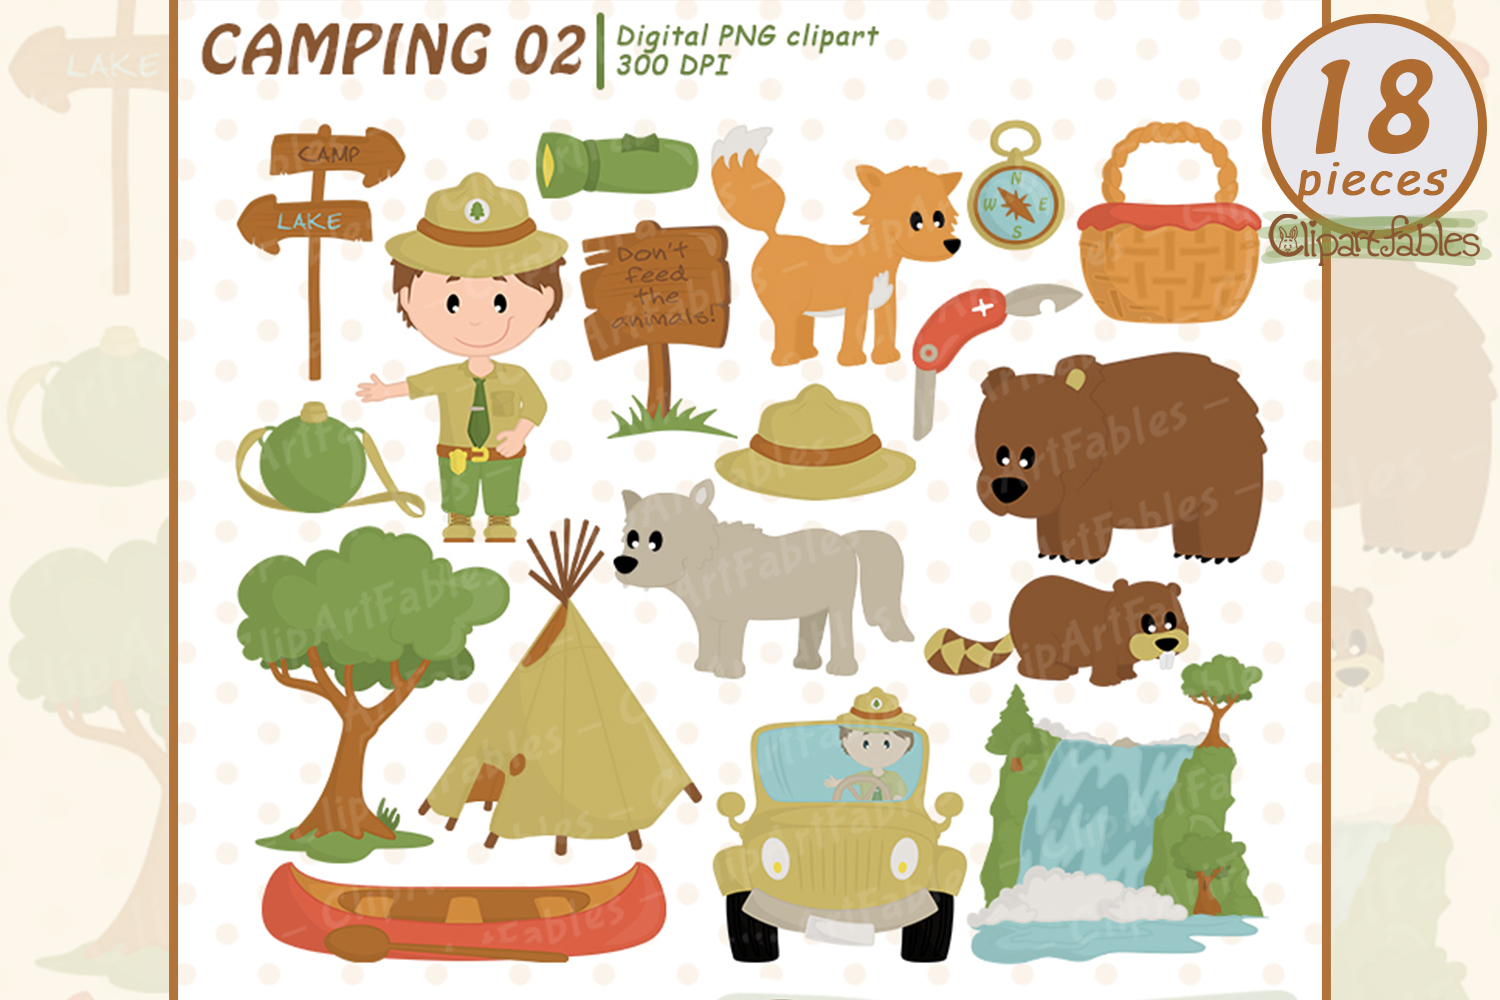 Cute RANGER clipart, Wild life, Outdoor clipart, Camping art example image 1